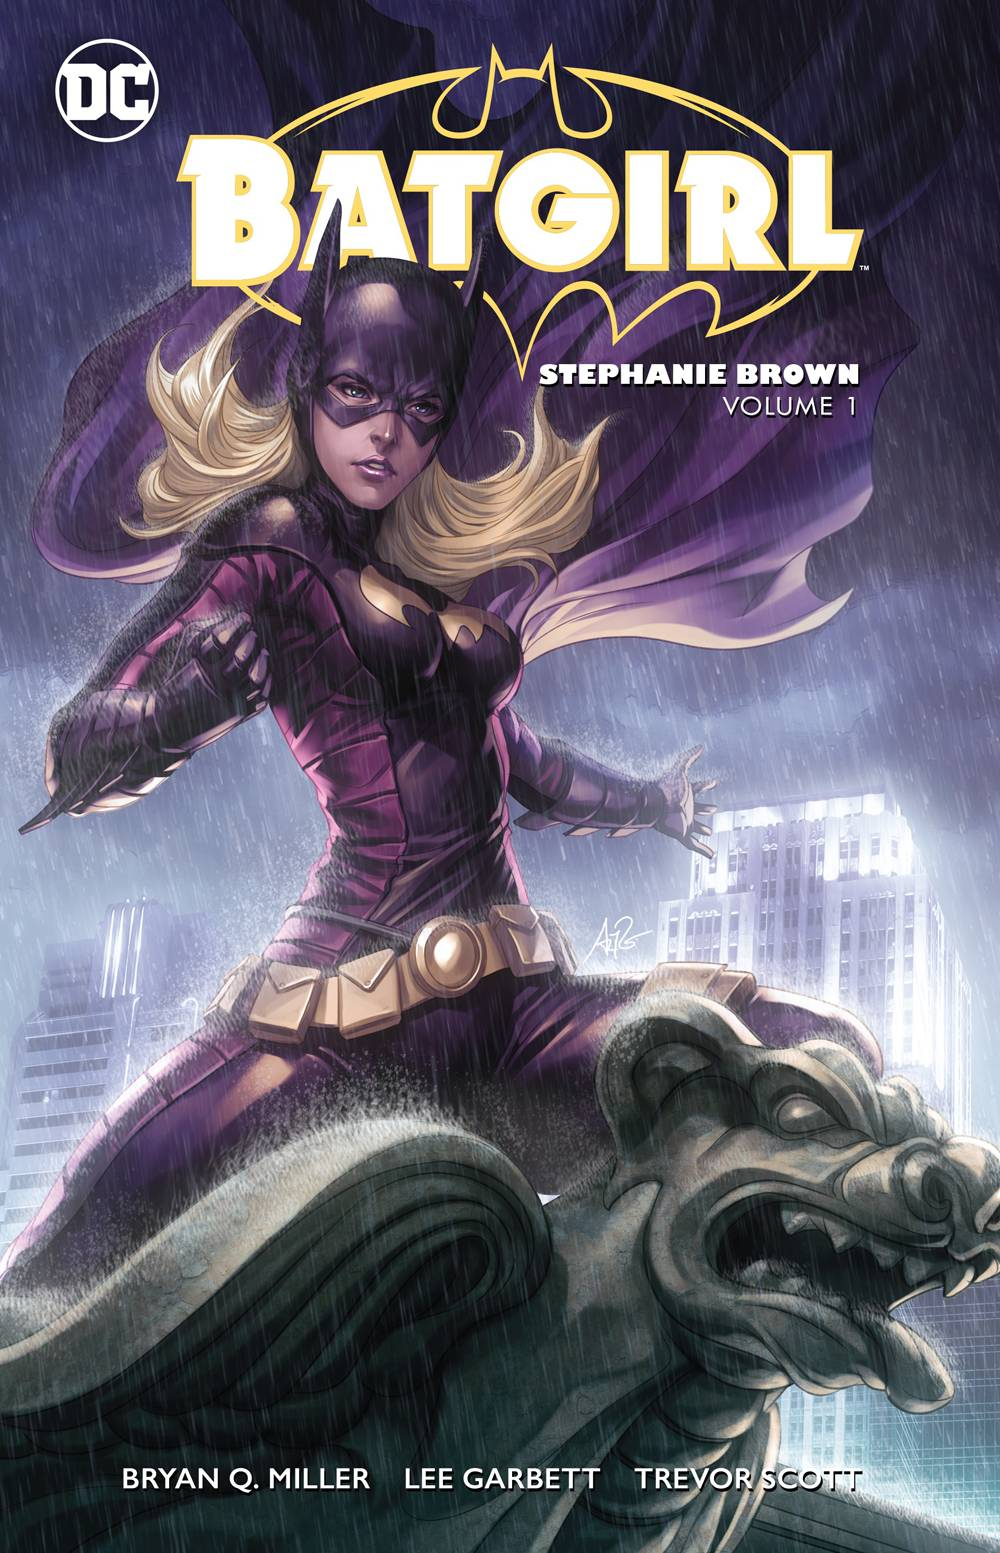 BATGIRL STEPHANIE BROWN TP 1.jpg